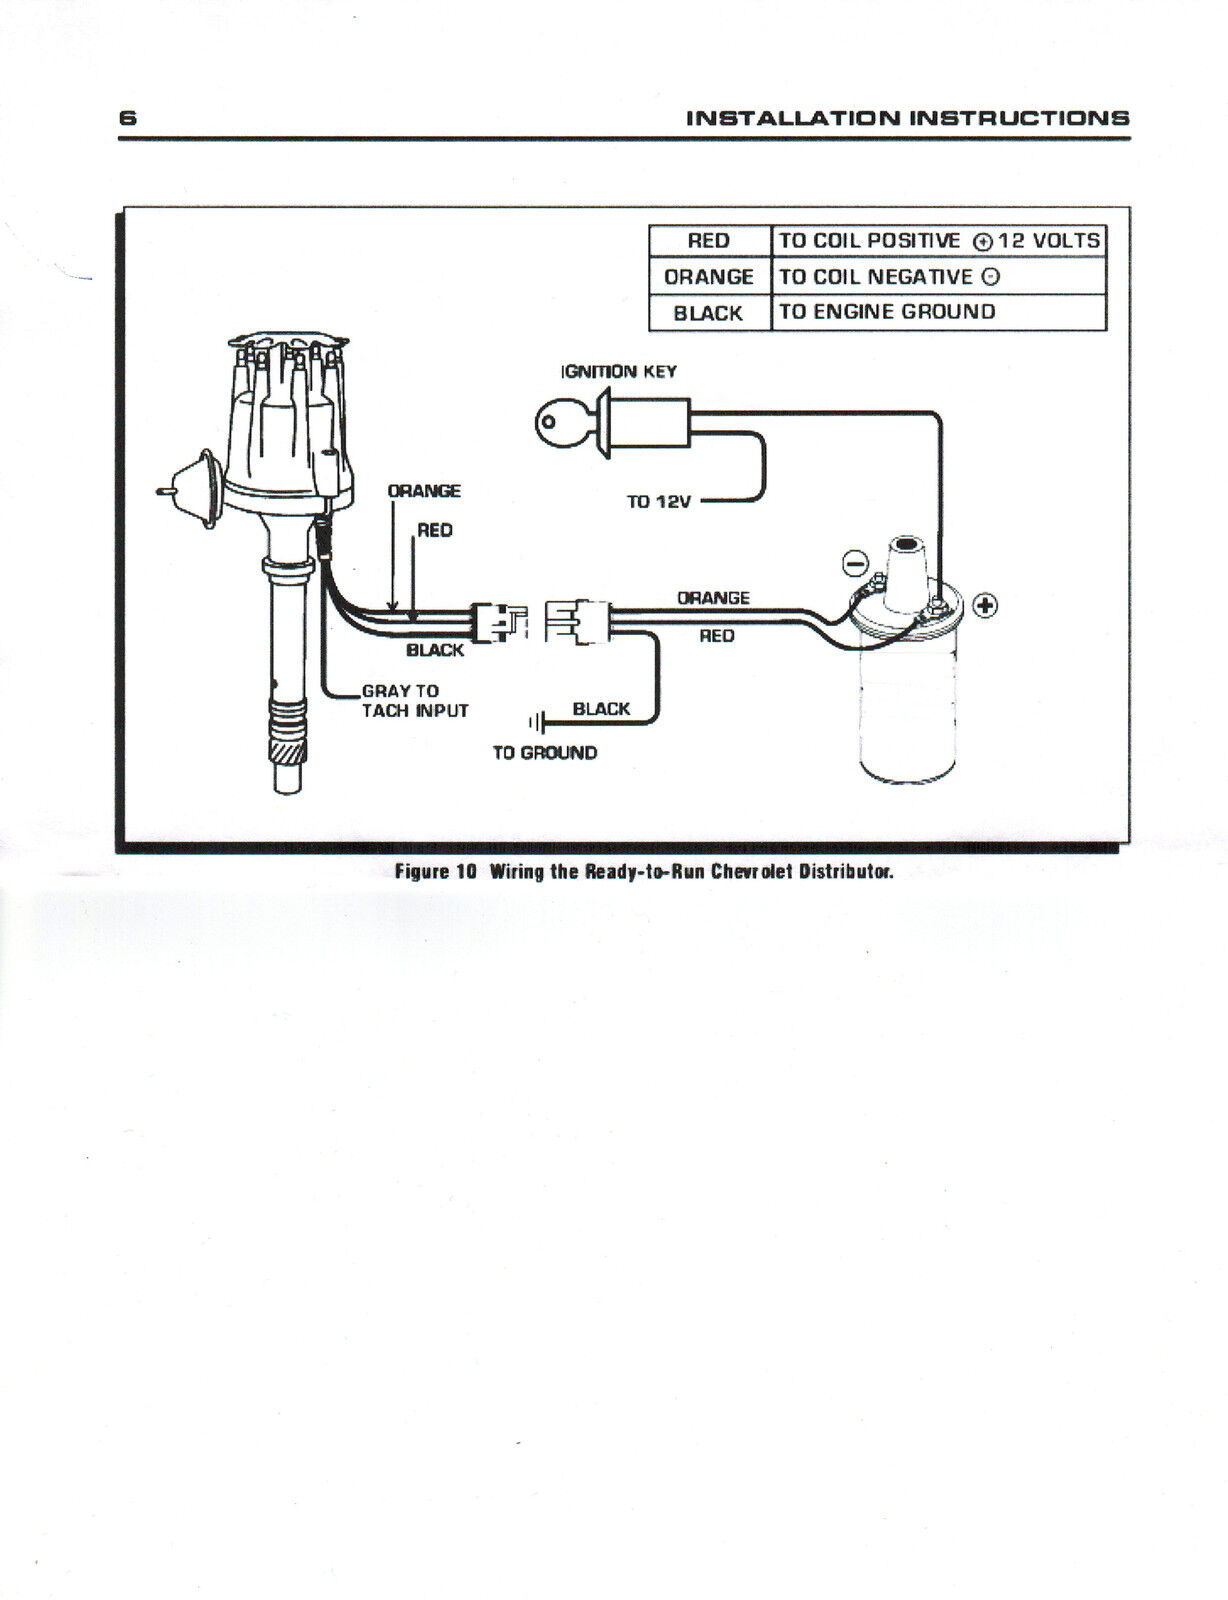 Diagram Of Fuse Box In Vw Rabbit Wiring Harness Wiring Diagram